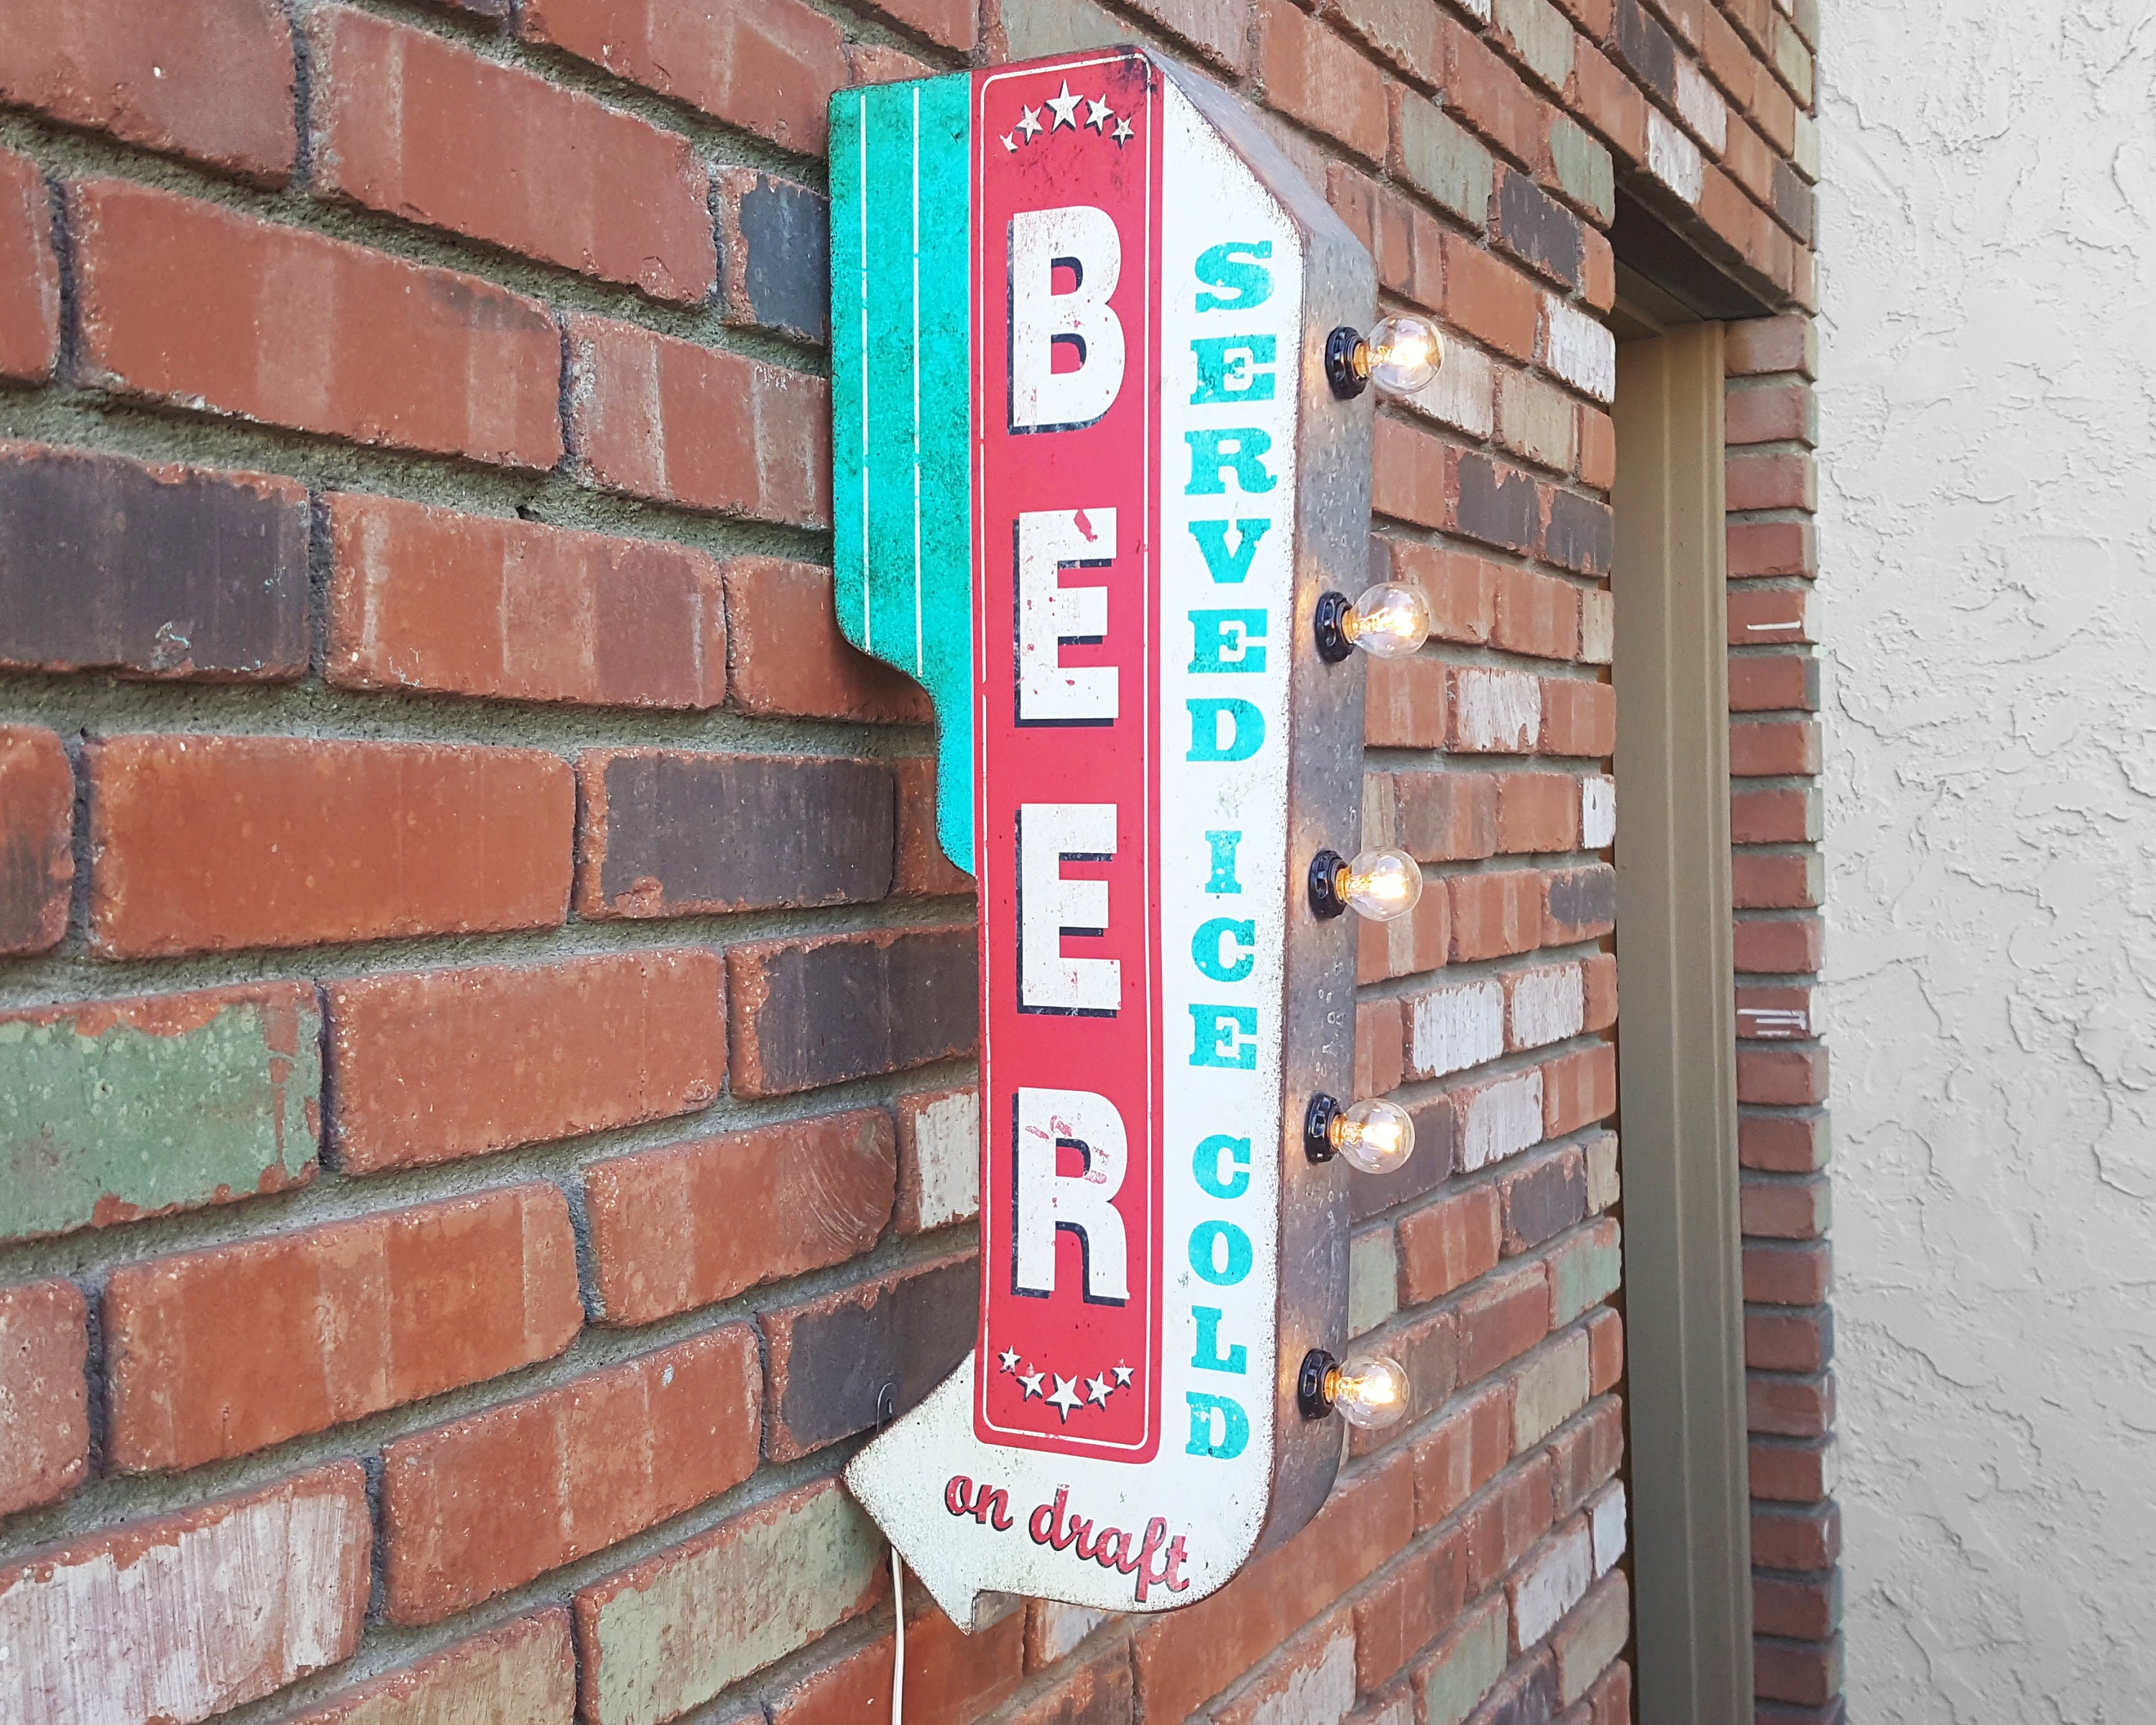 ICE COLD BEER METAL SIGN WITH LIGHTS BATERY OPERATED NEW